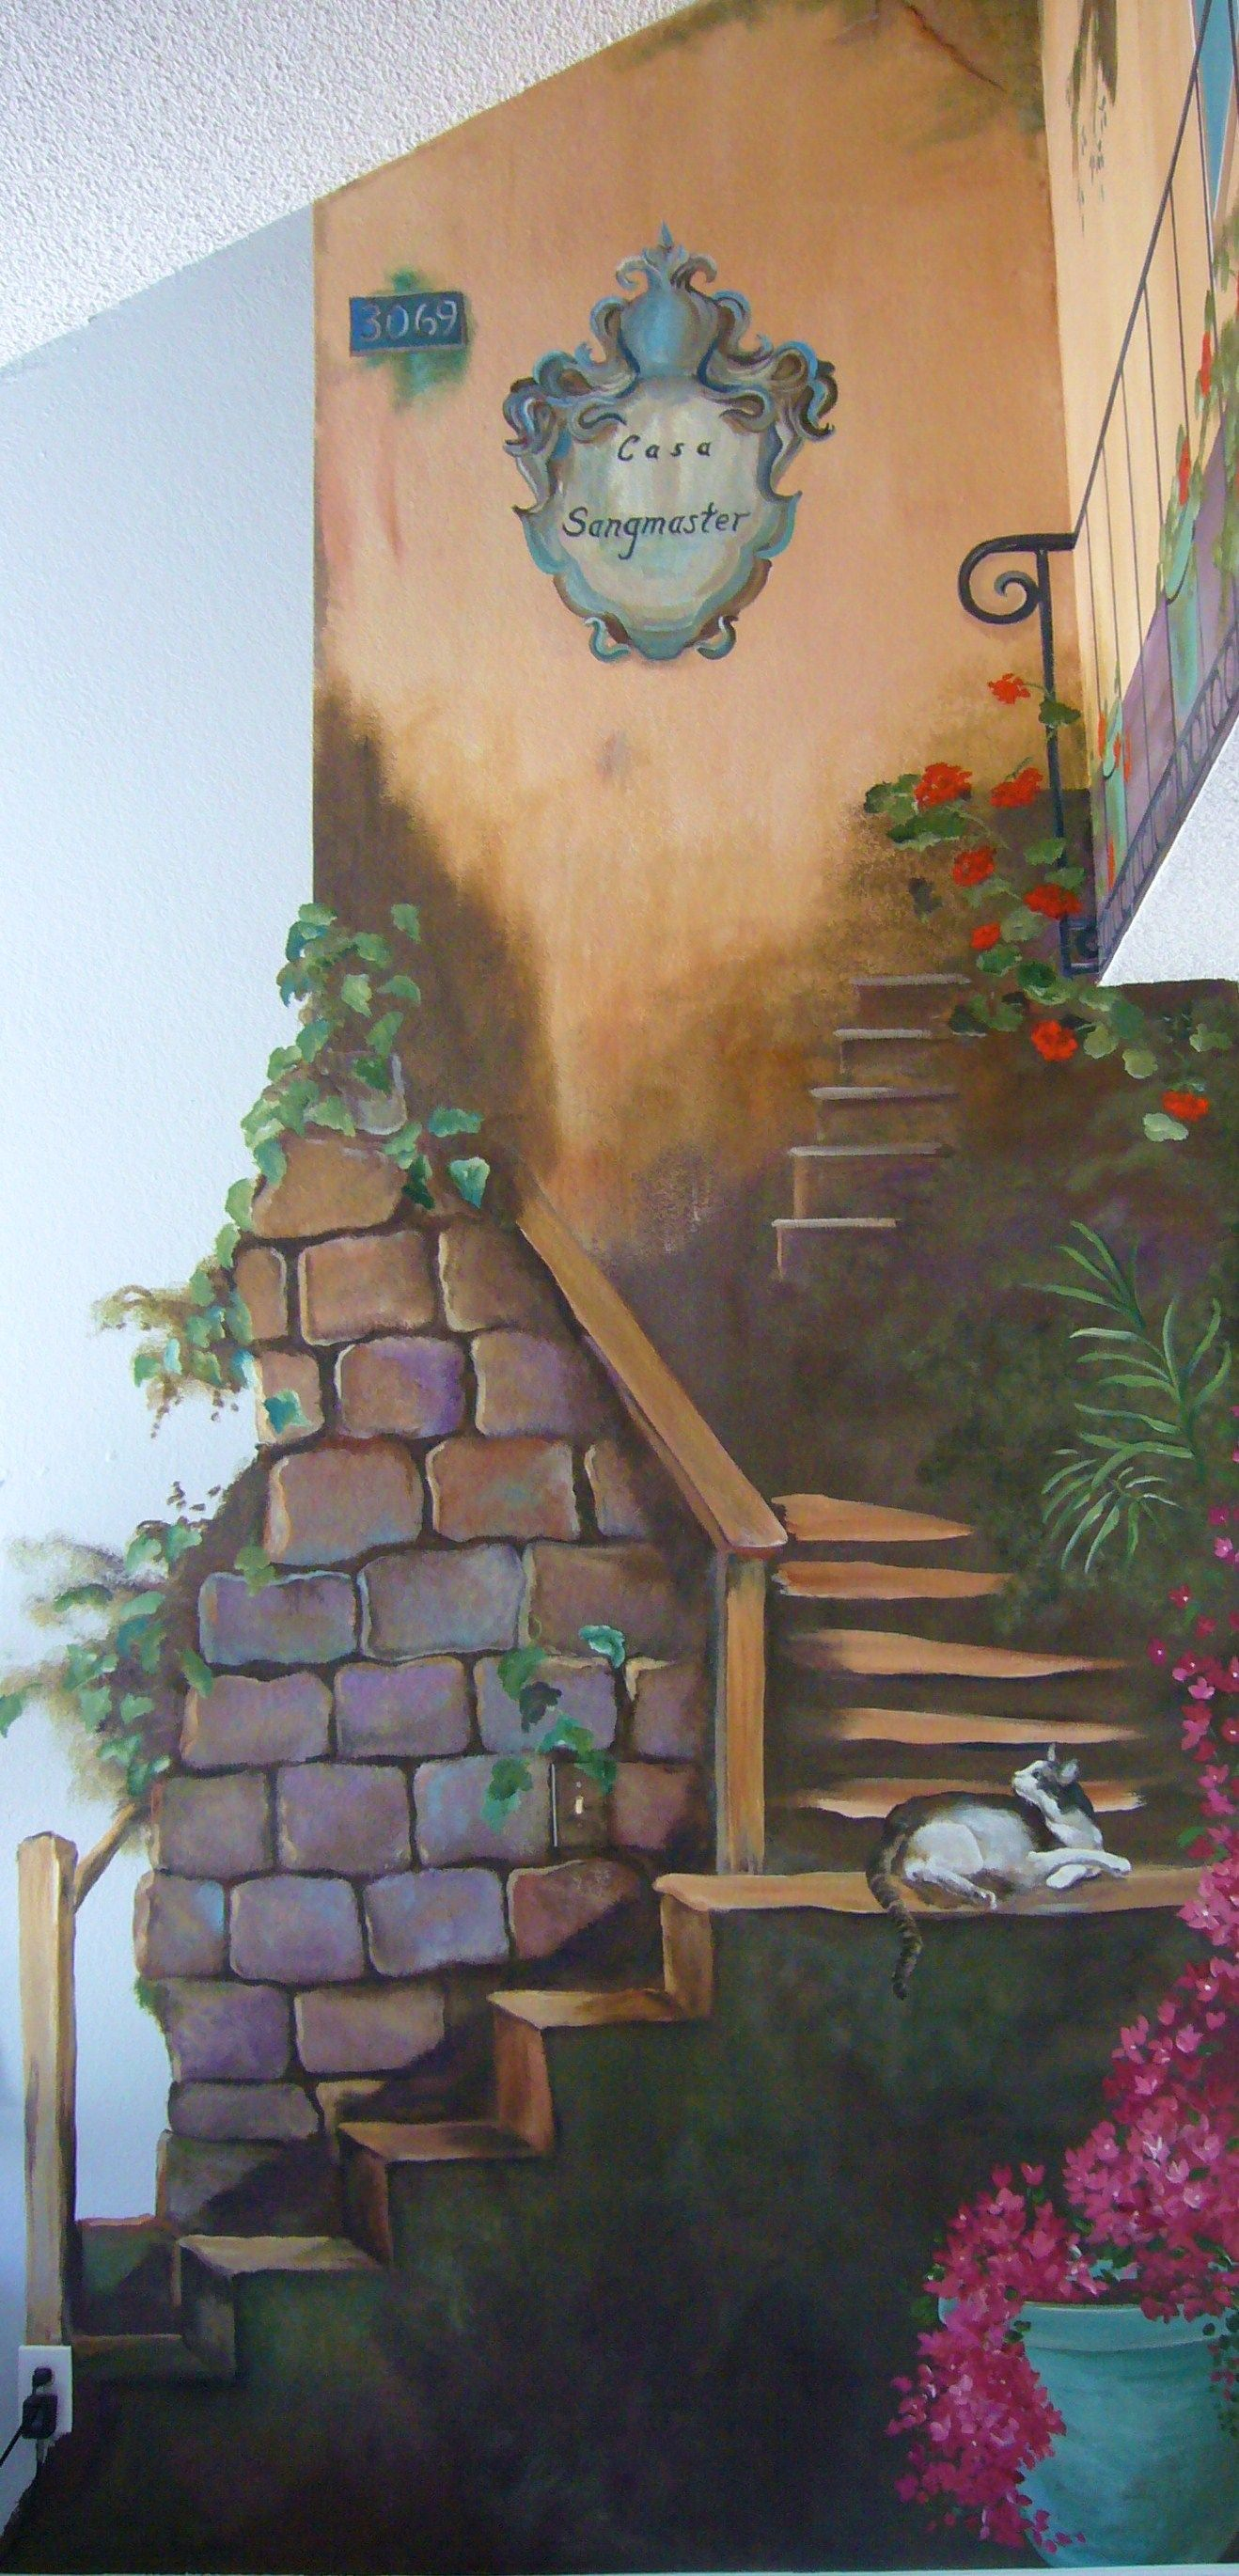 Tuscan wall murals area mural artist marion hatcher paints 3d tuscan wall murals area mural artist marion hatcher paints 3d illusions angels amipublicfo Image collections